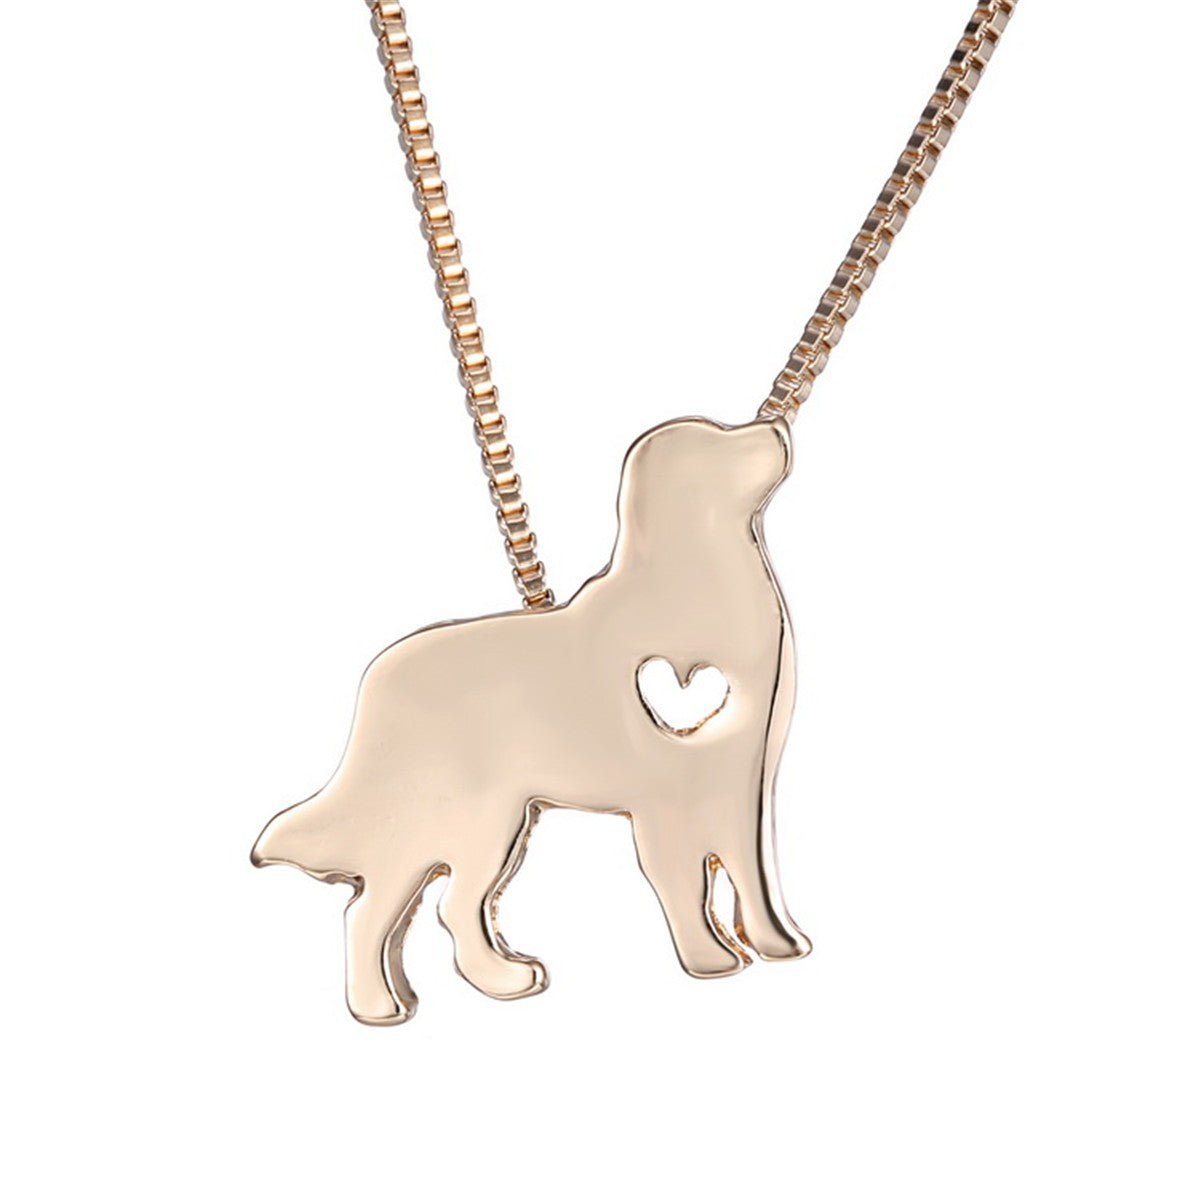 Puppy Dog Cute Lovely Animal Charm Friends Necklace Chain Jewelry